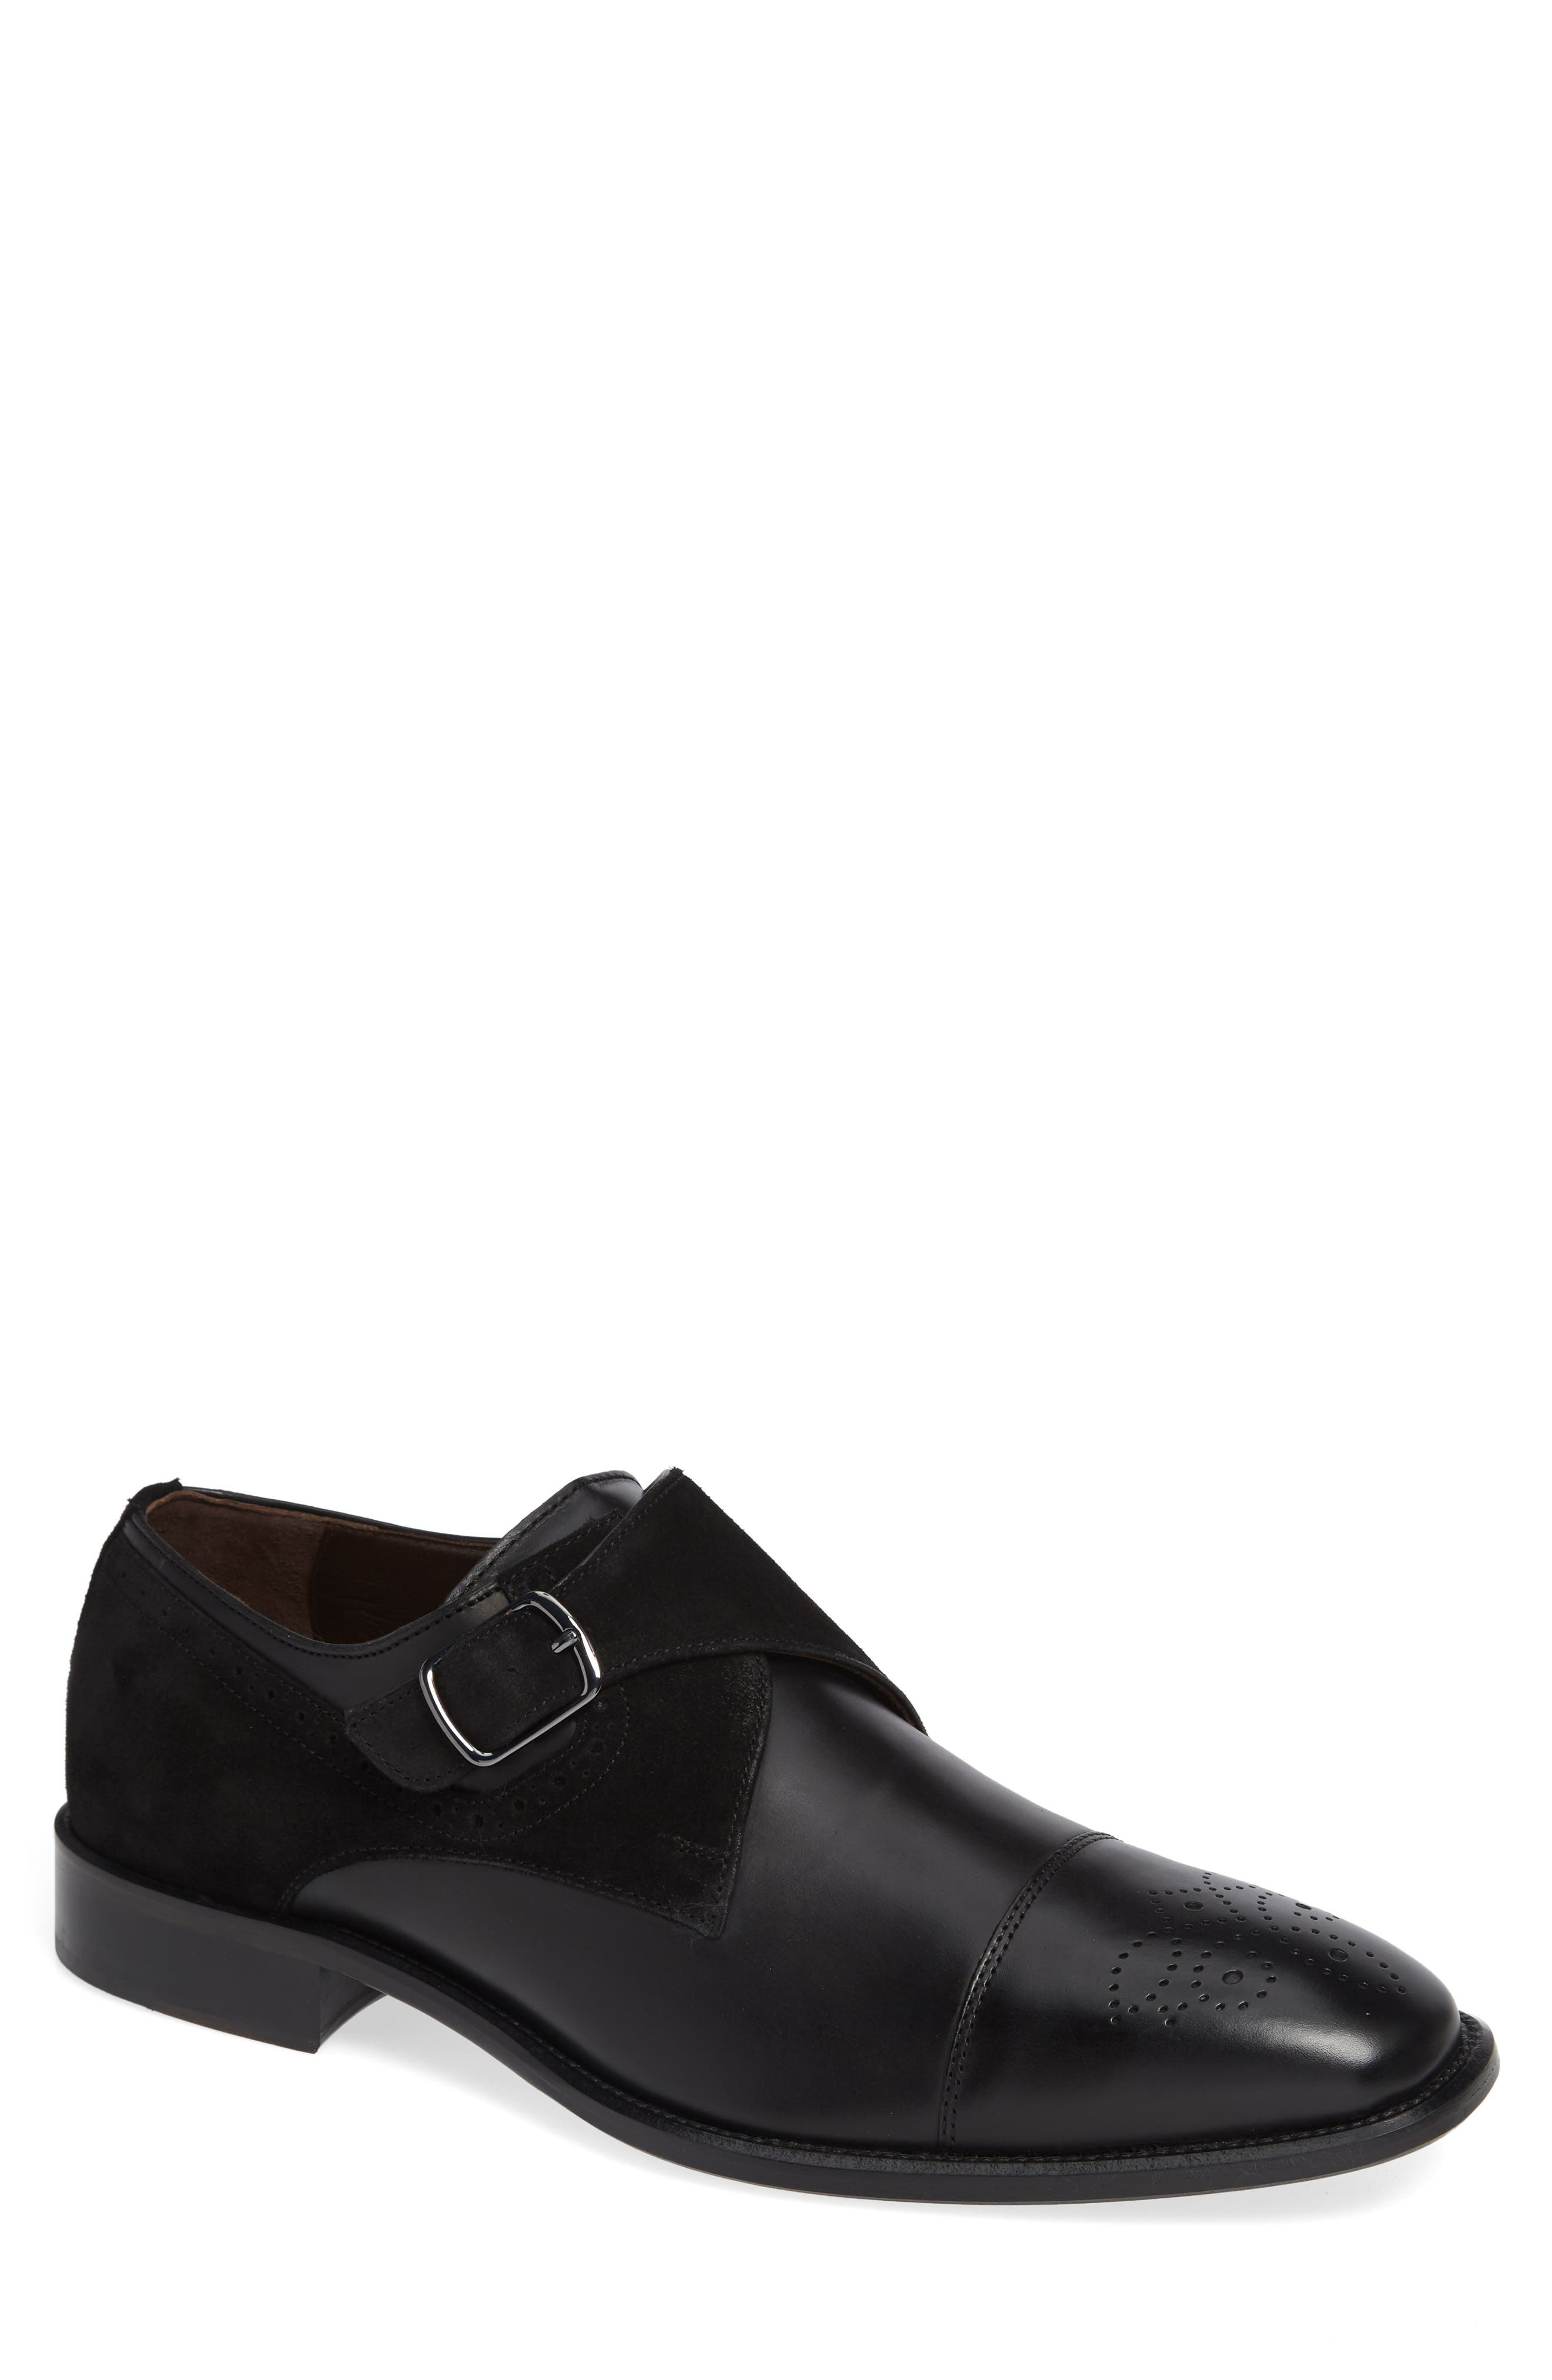 Maxwell Monk Shoe,                             Main thumbnail 1, color,                             BLACK SUEDE